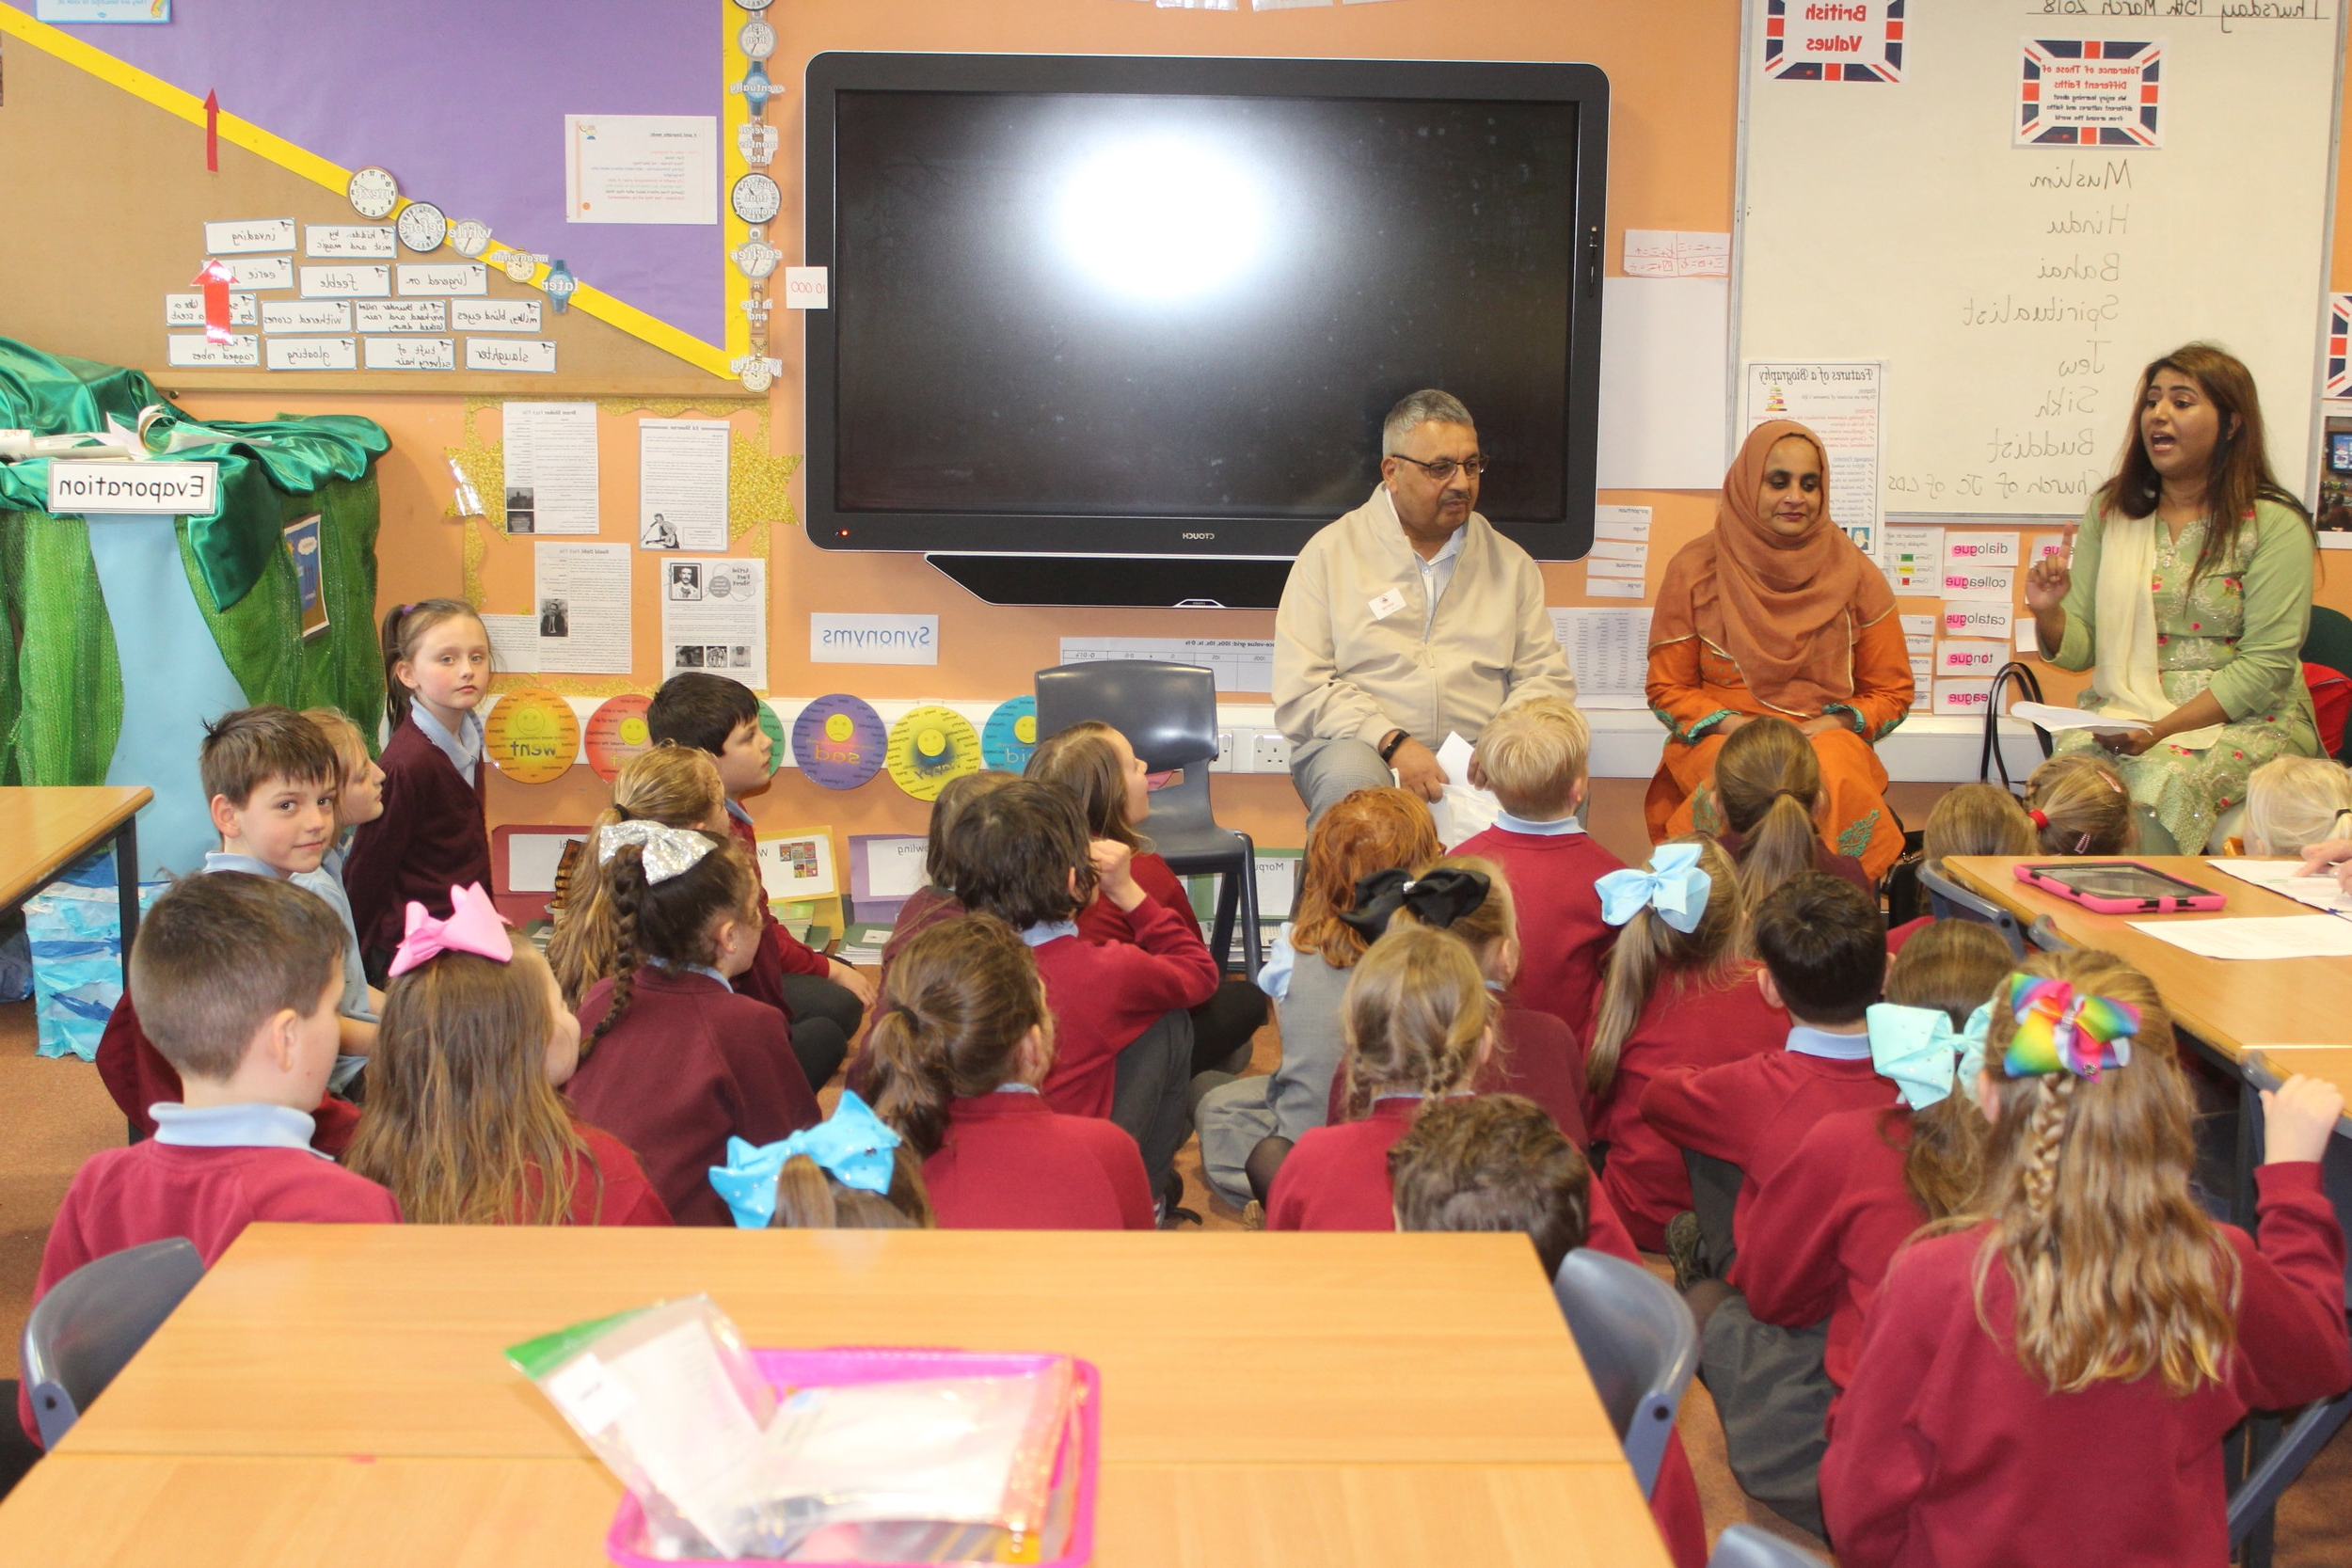 Tolerance of other Faiths - We had faith visitors from the Darlington Community Group in to talk to our children and explain about their beliefs, their cultures and their communities. The children learned lots from our visitors, who explained all about what it is like living in Britain for them. Tolerance and understanding was a massive theme across all religions and all of our visitors talked about the fellowship of faith - togetherness - that make us all similar. Love was the overarching theme, regardless of their faith. It was lovely to celebrate how much we all have in common!